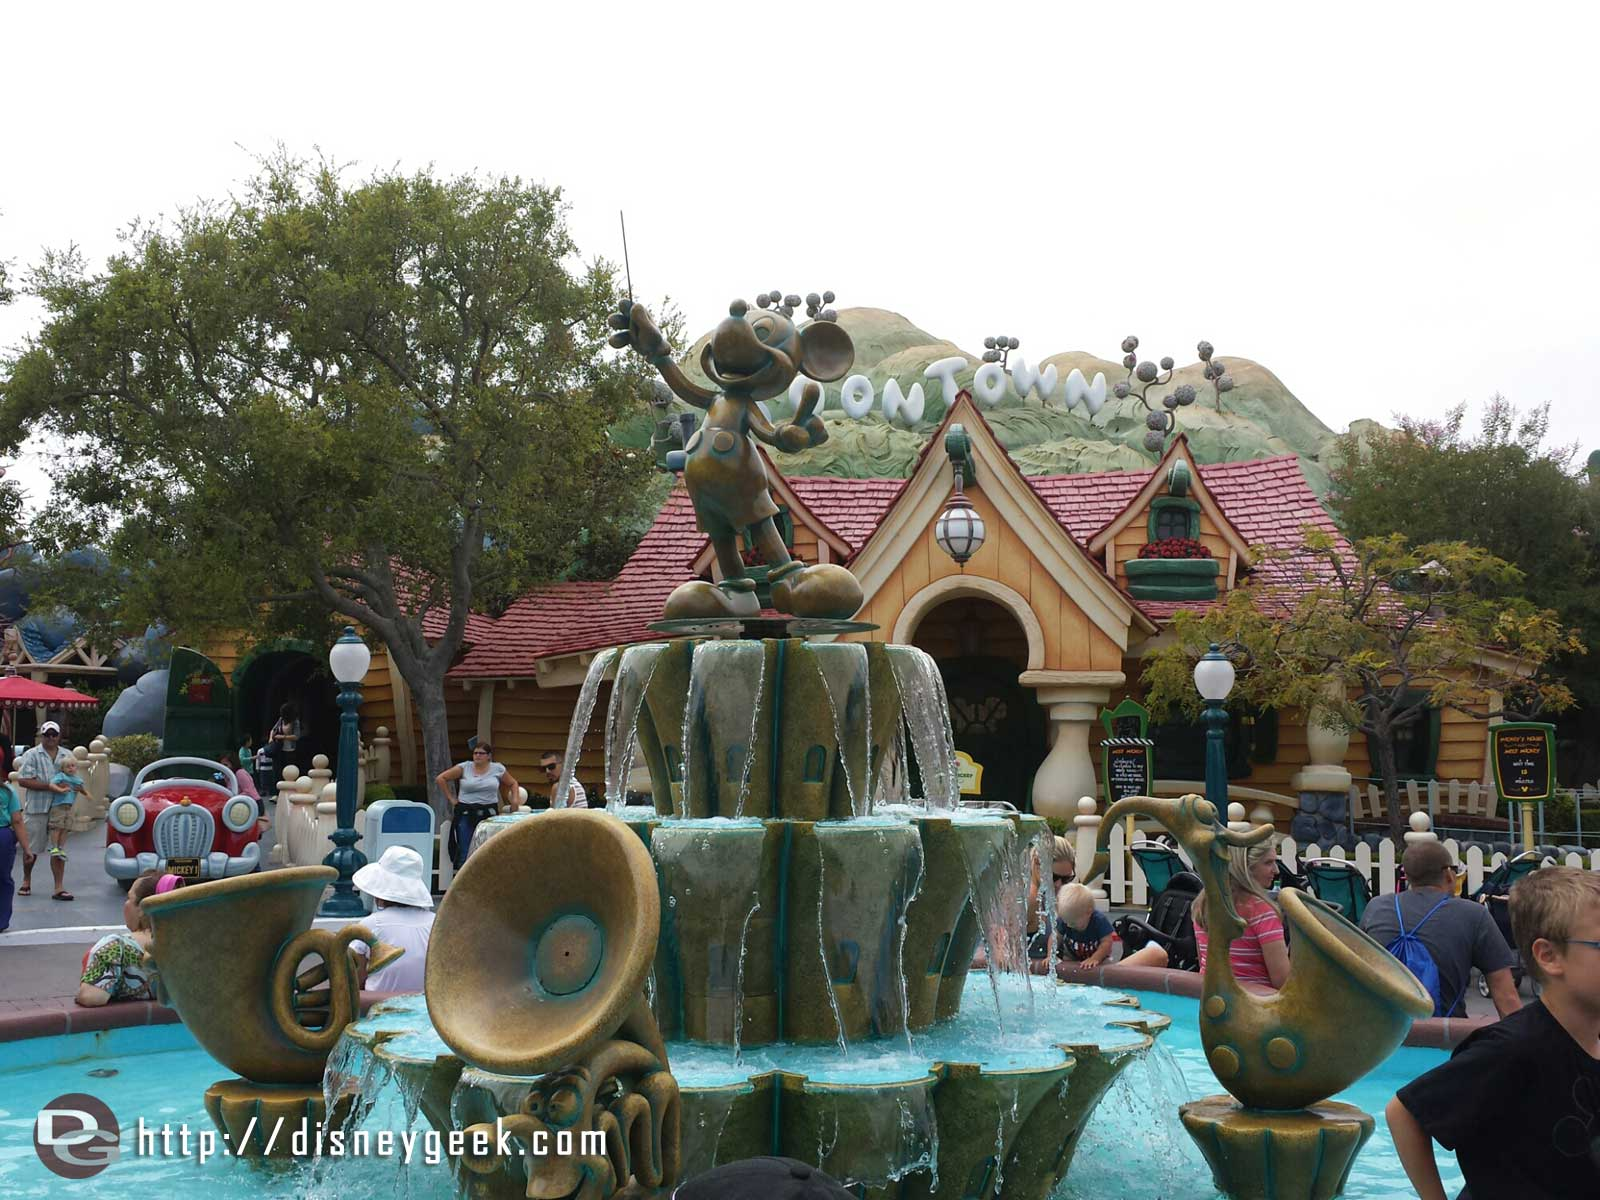 The other, Mickey, fountain work is complete too